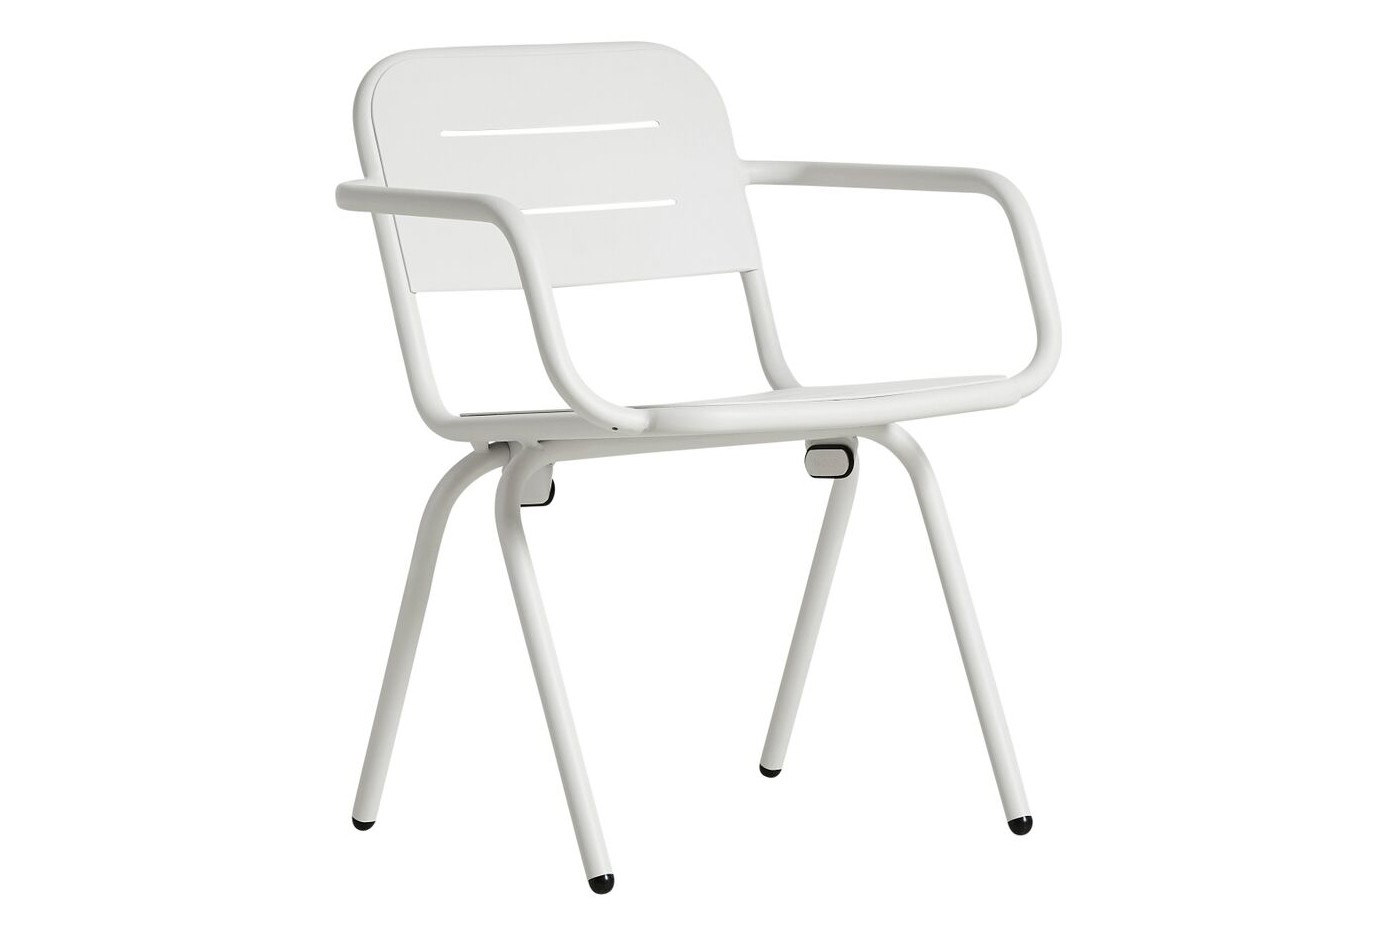 Ray Dining Chair with Armrests - Set of 2 White